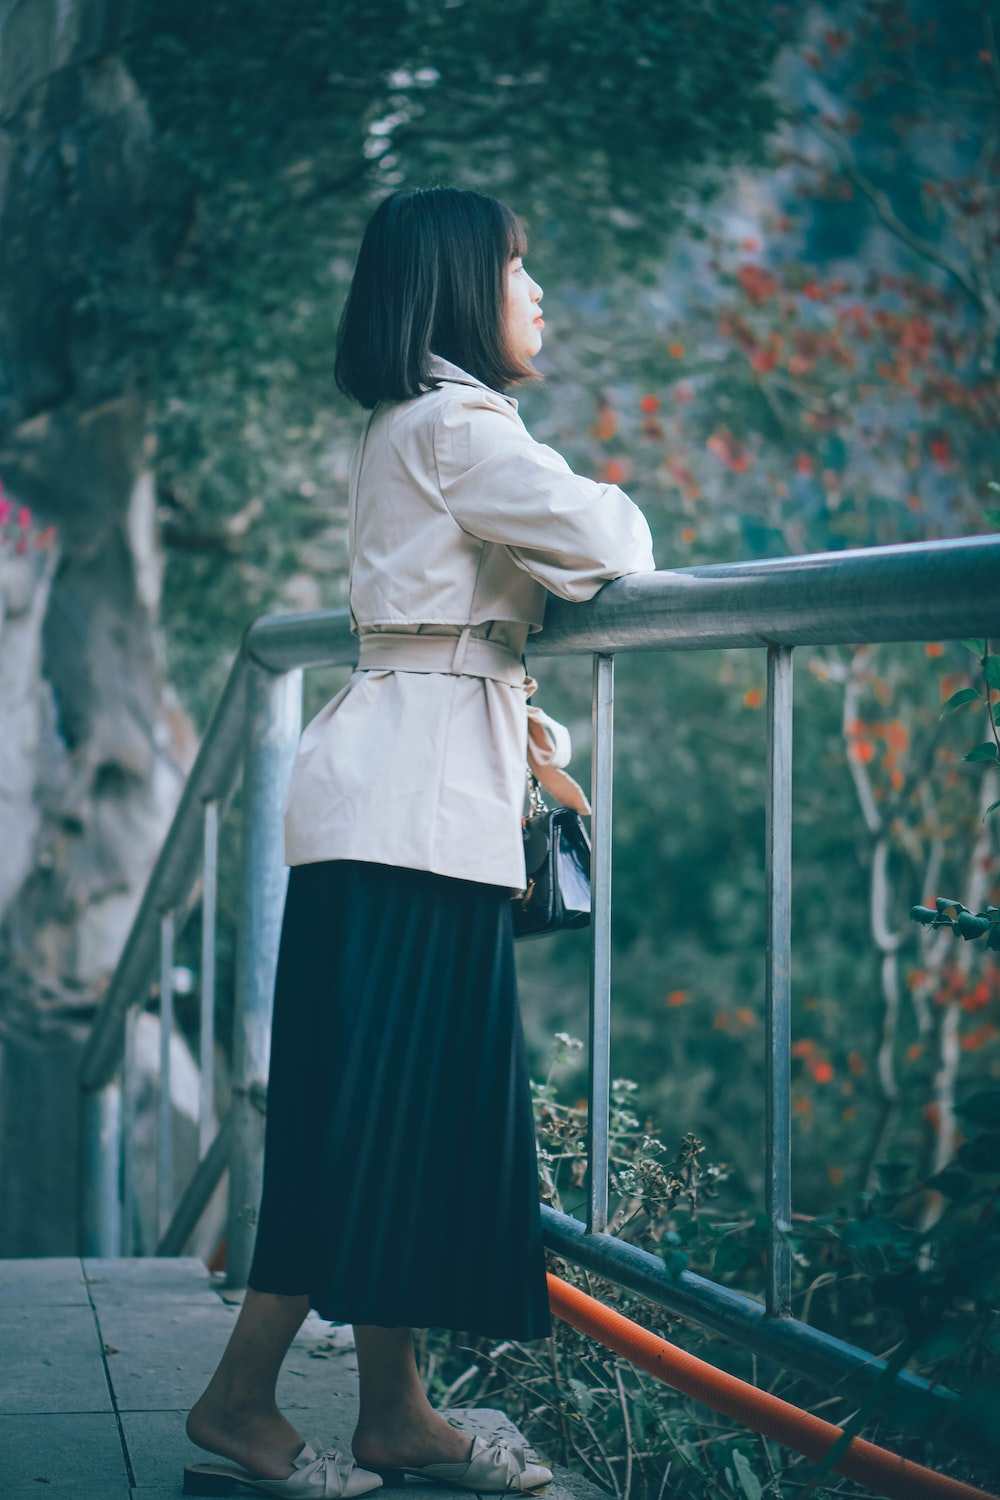 woman in white long sleeve shirt and black skirt standing on gray metal railings during daytime